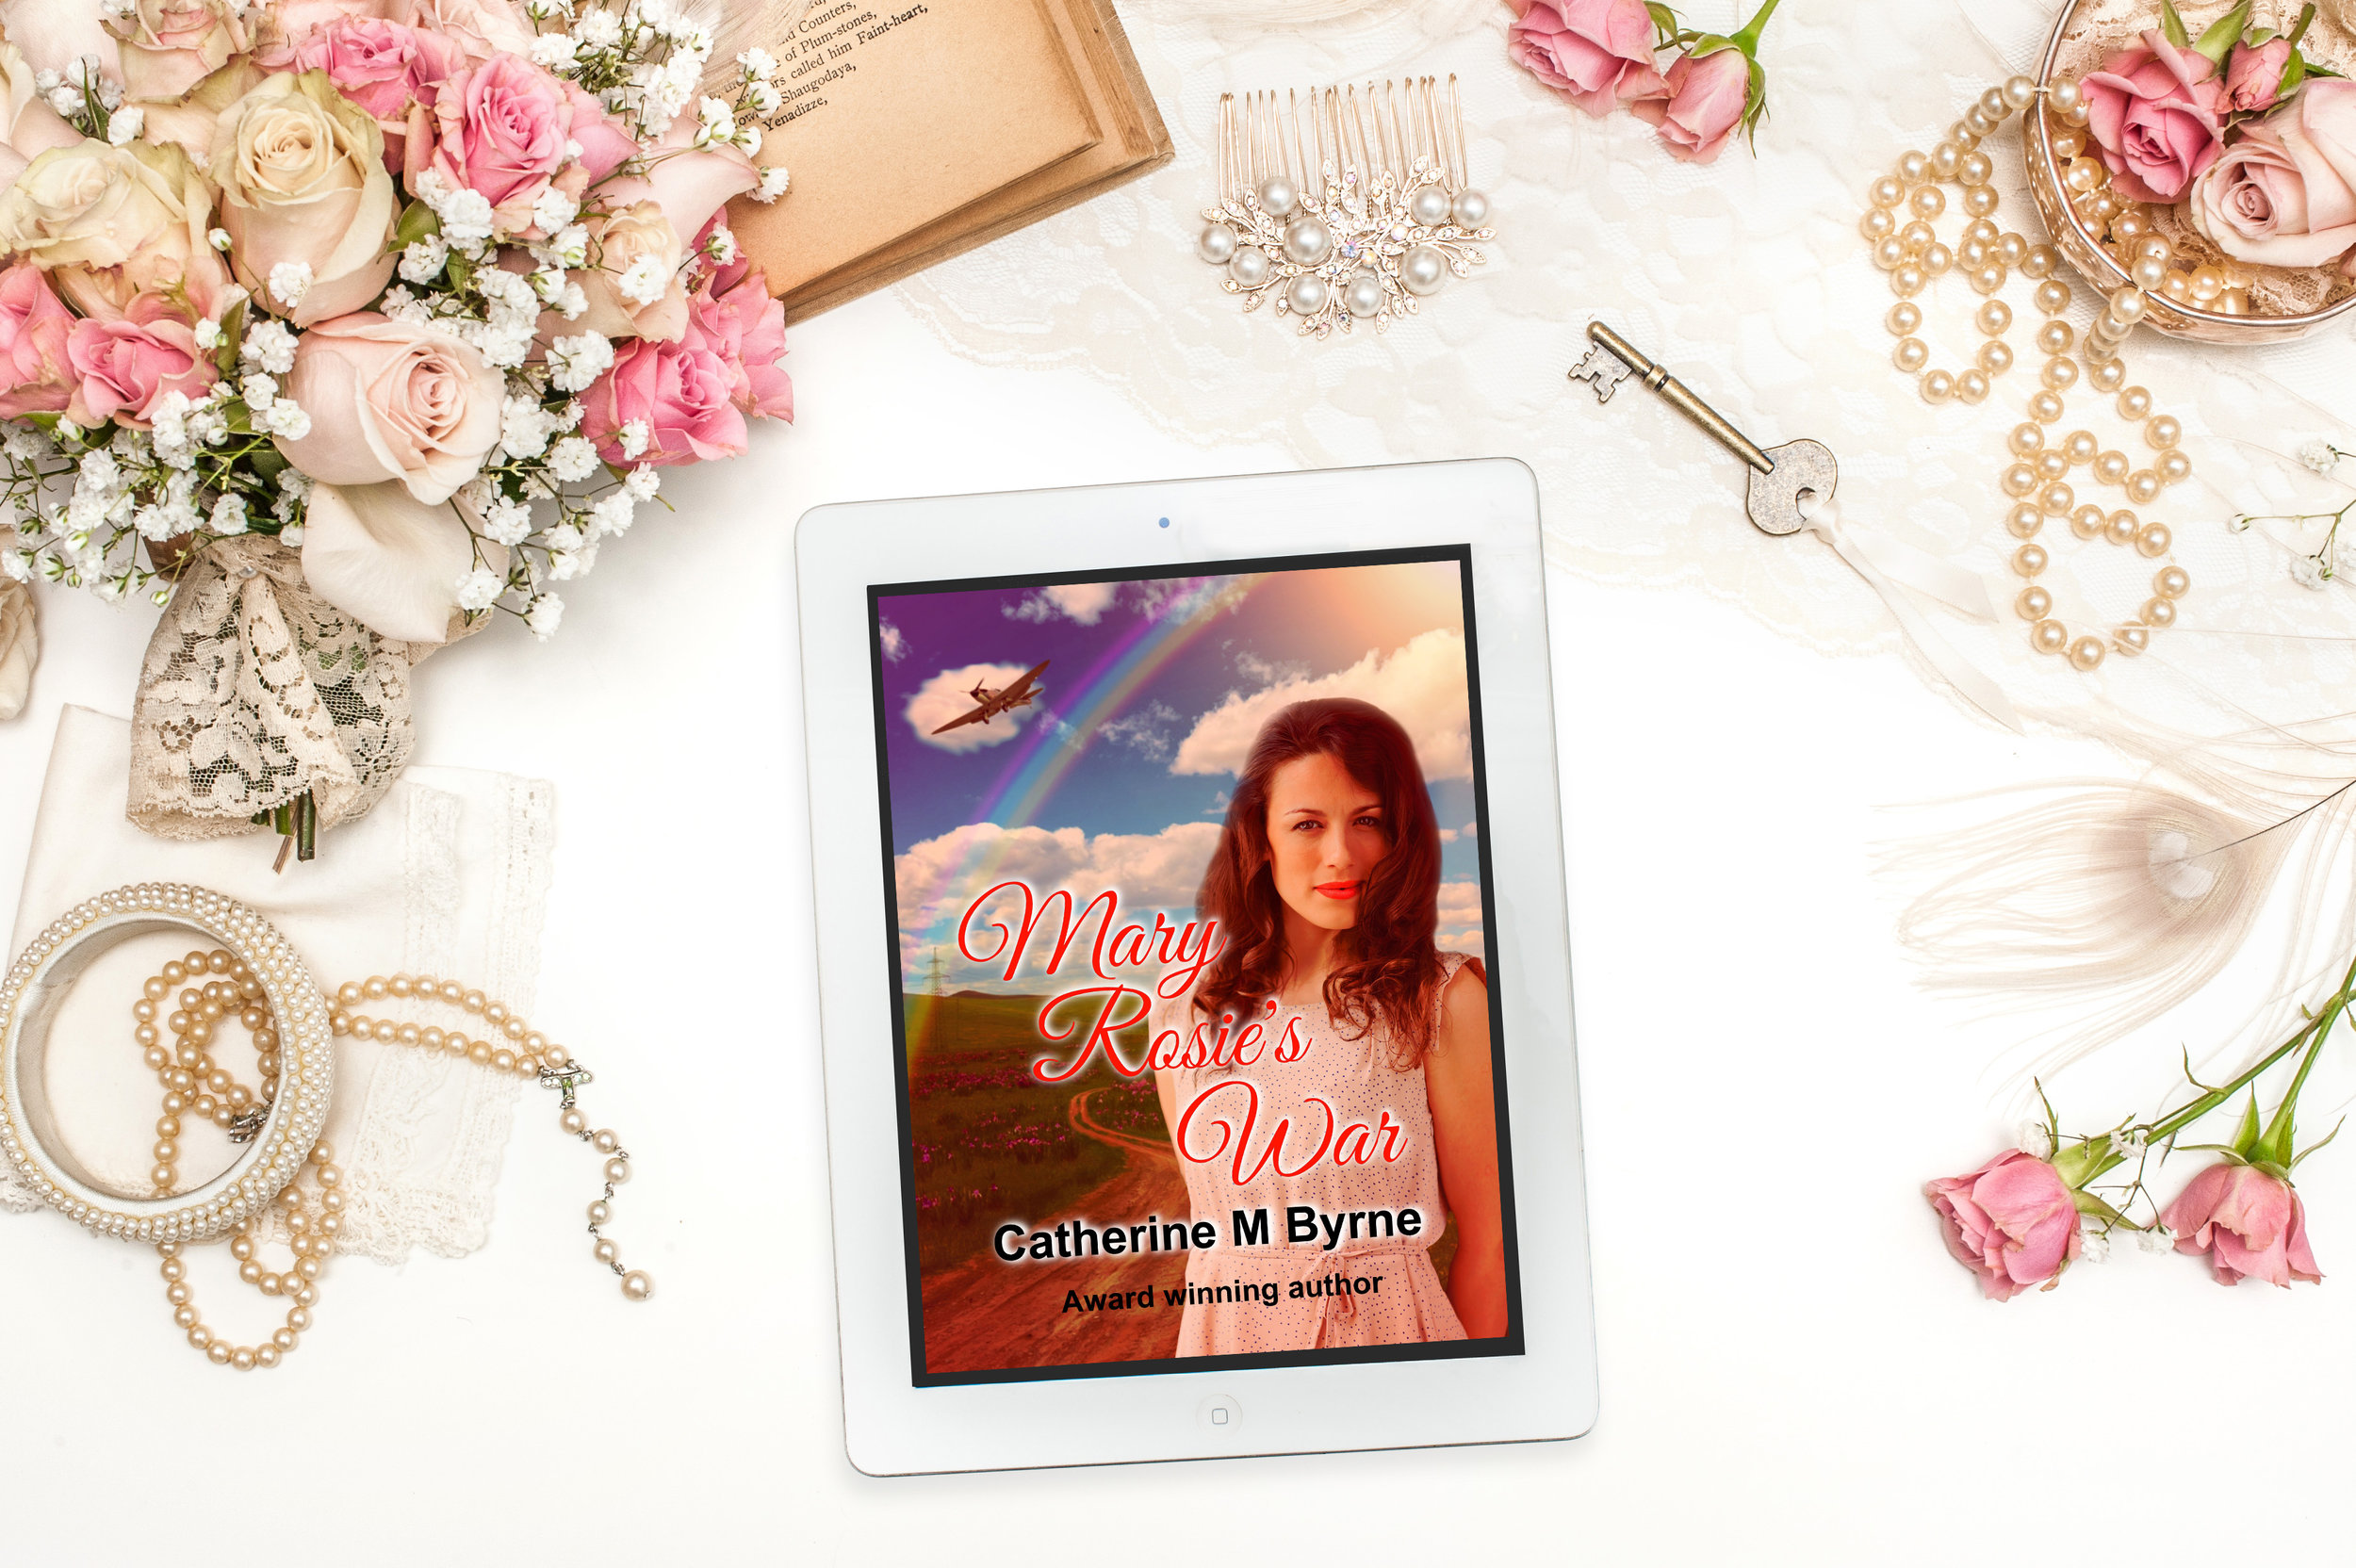 mary rosies war catherine m Byrne book review